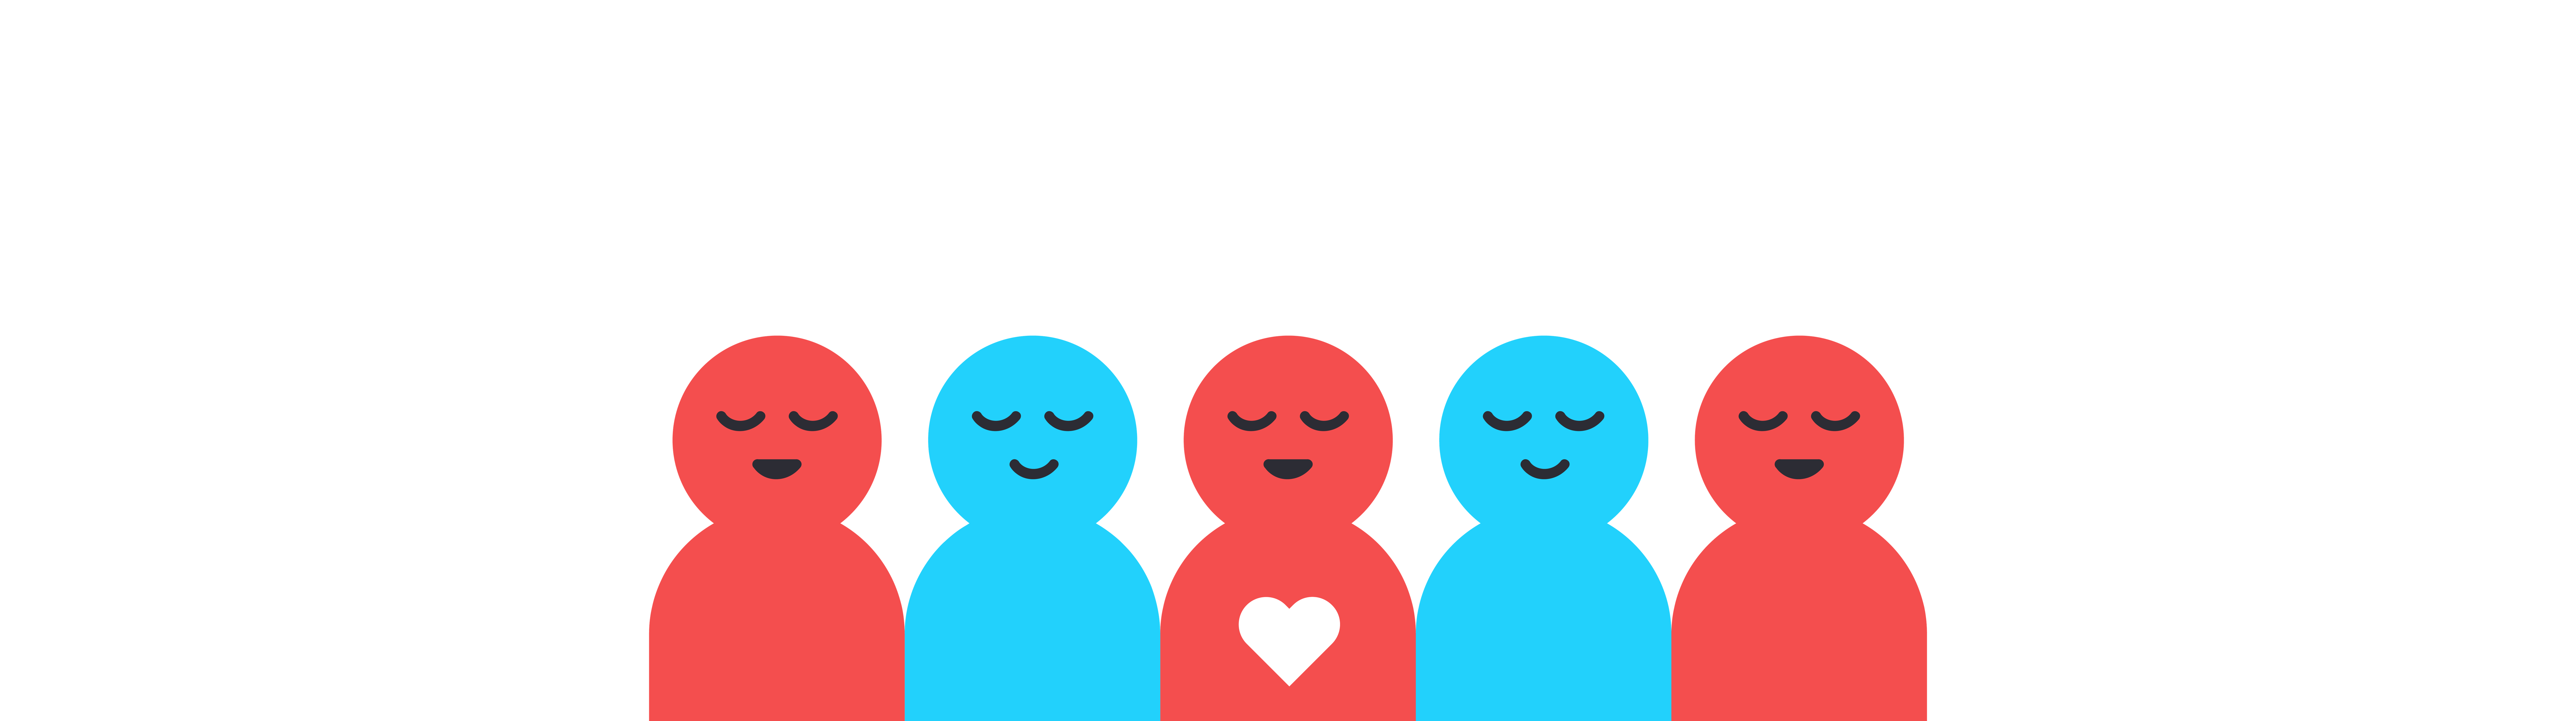 A graphic of people with the heart symbol